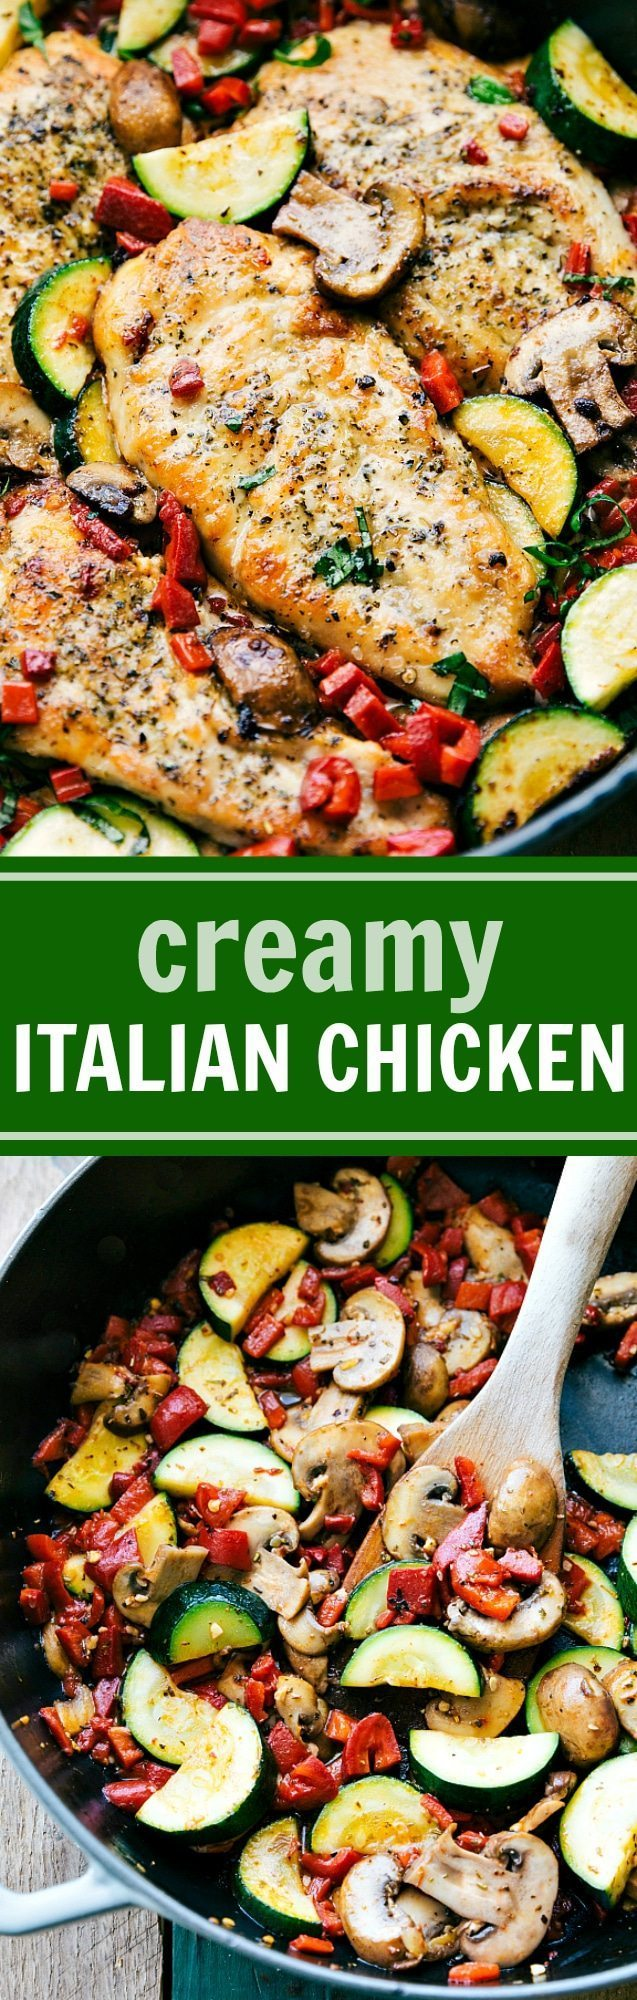 Easy Italian Chicken and Veggies is a delicious meal the whole family will love! This restaurant quality dish is one you'll want to make over and over again! via chelseasmessyapron.com